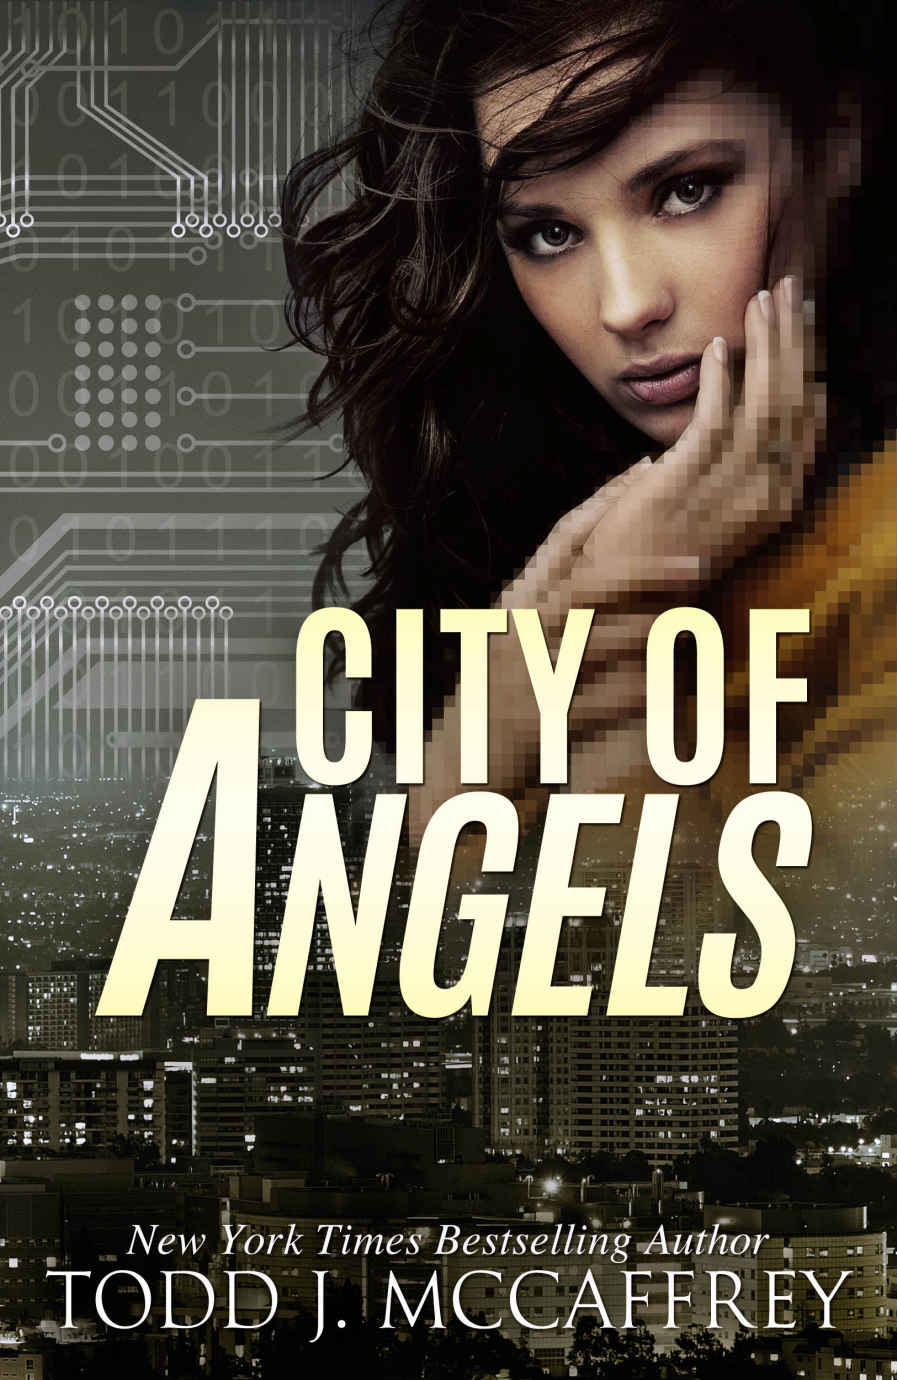 City of Angels by Todd McCaffrey - Book Cover